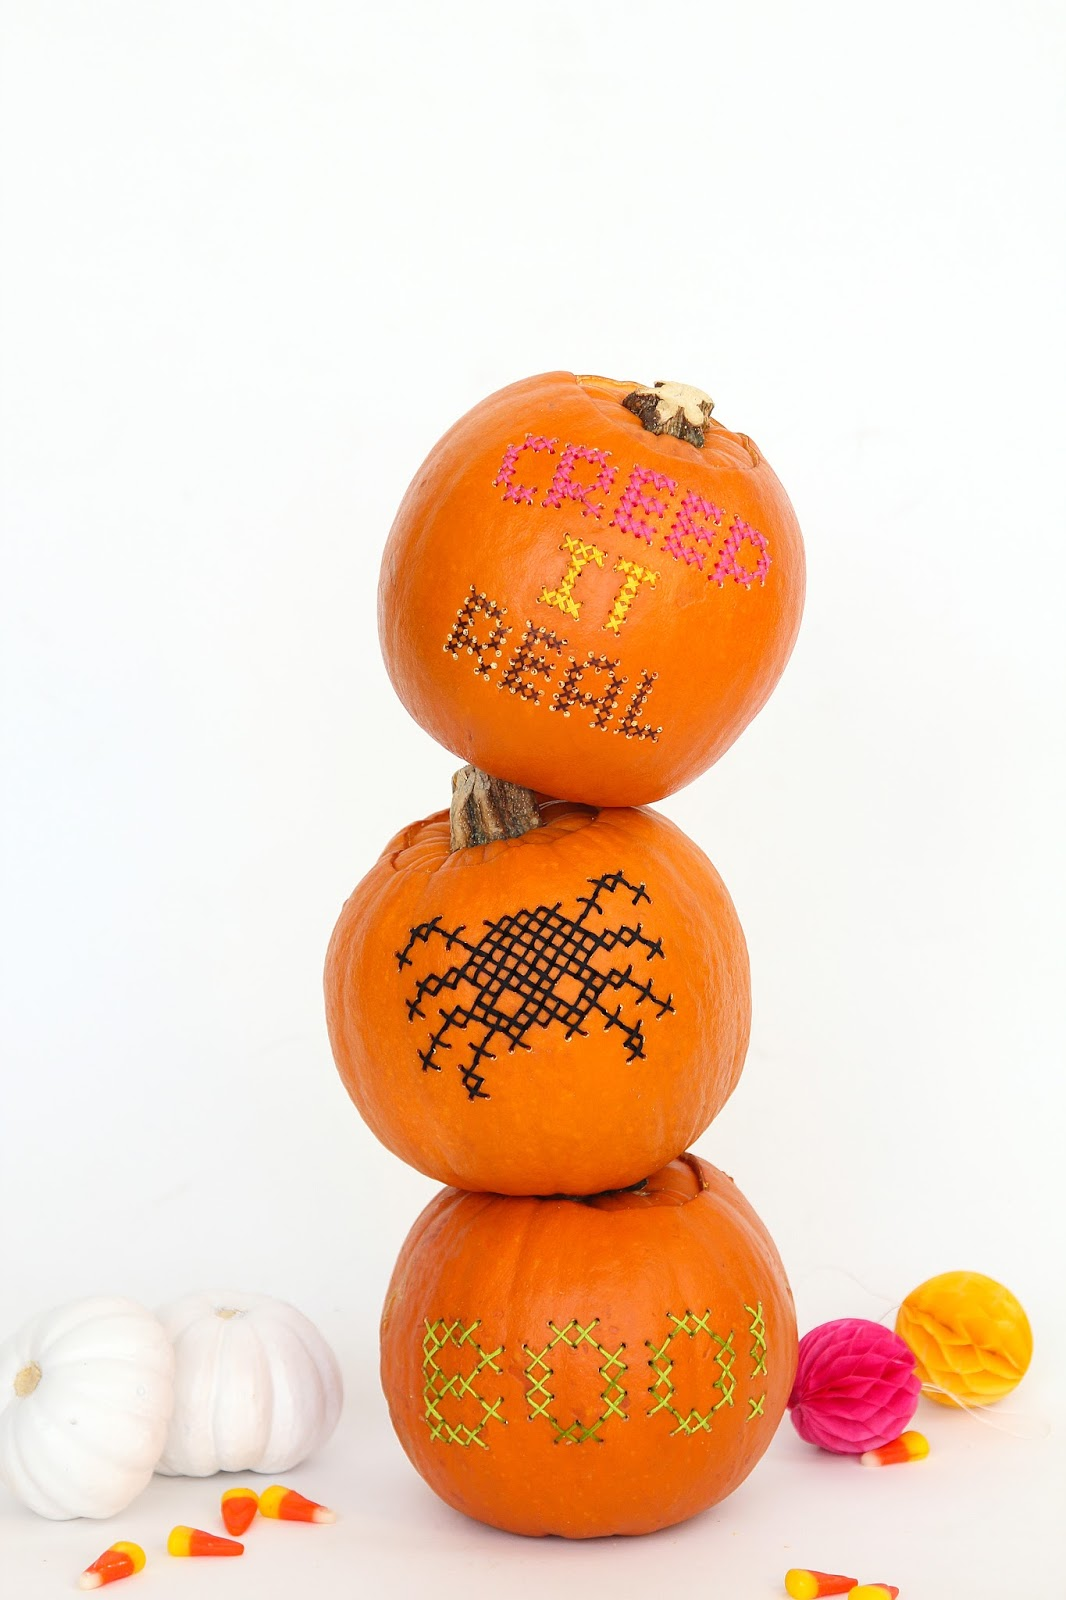 Cross stitch pumpkins